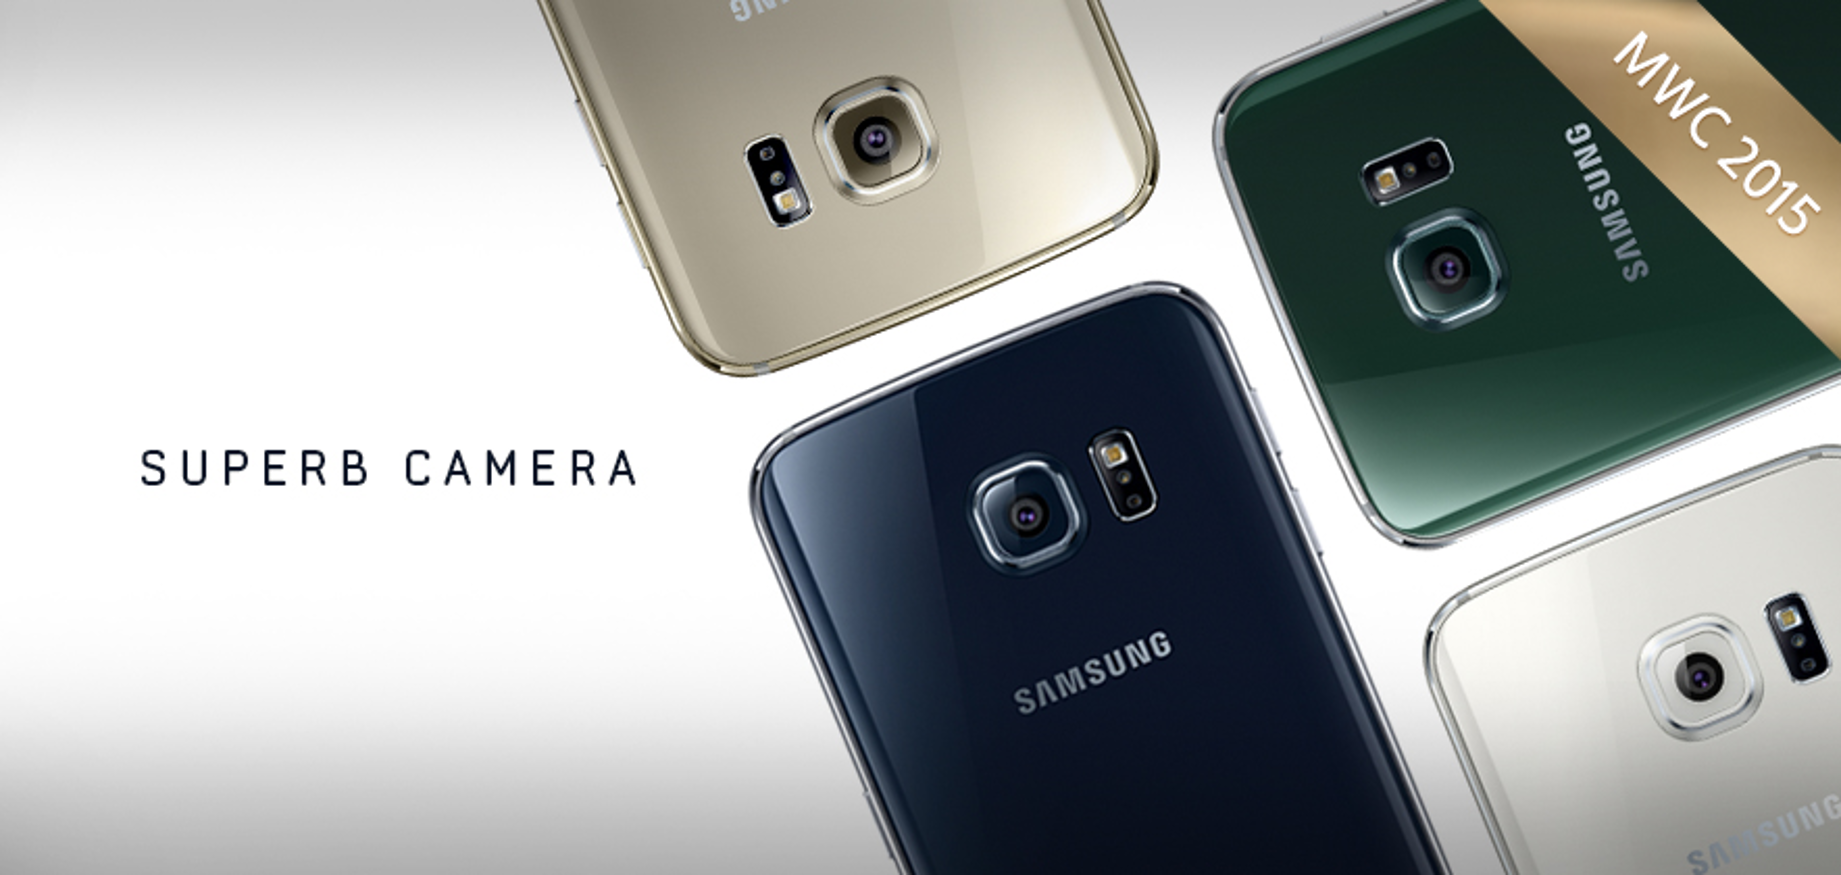 Superb Camera: Galaxy S6 and Galaxy S6 edge